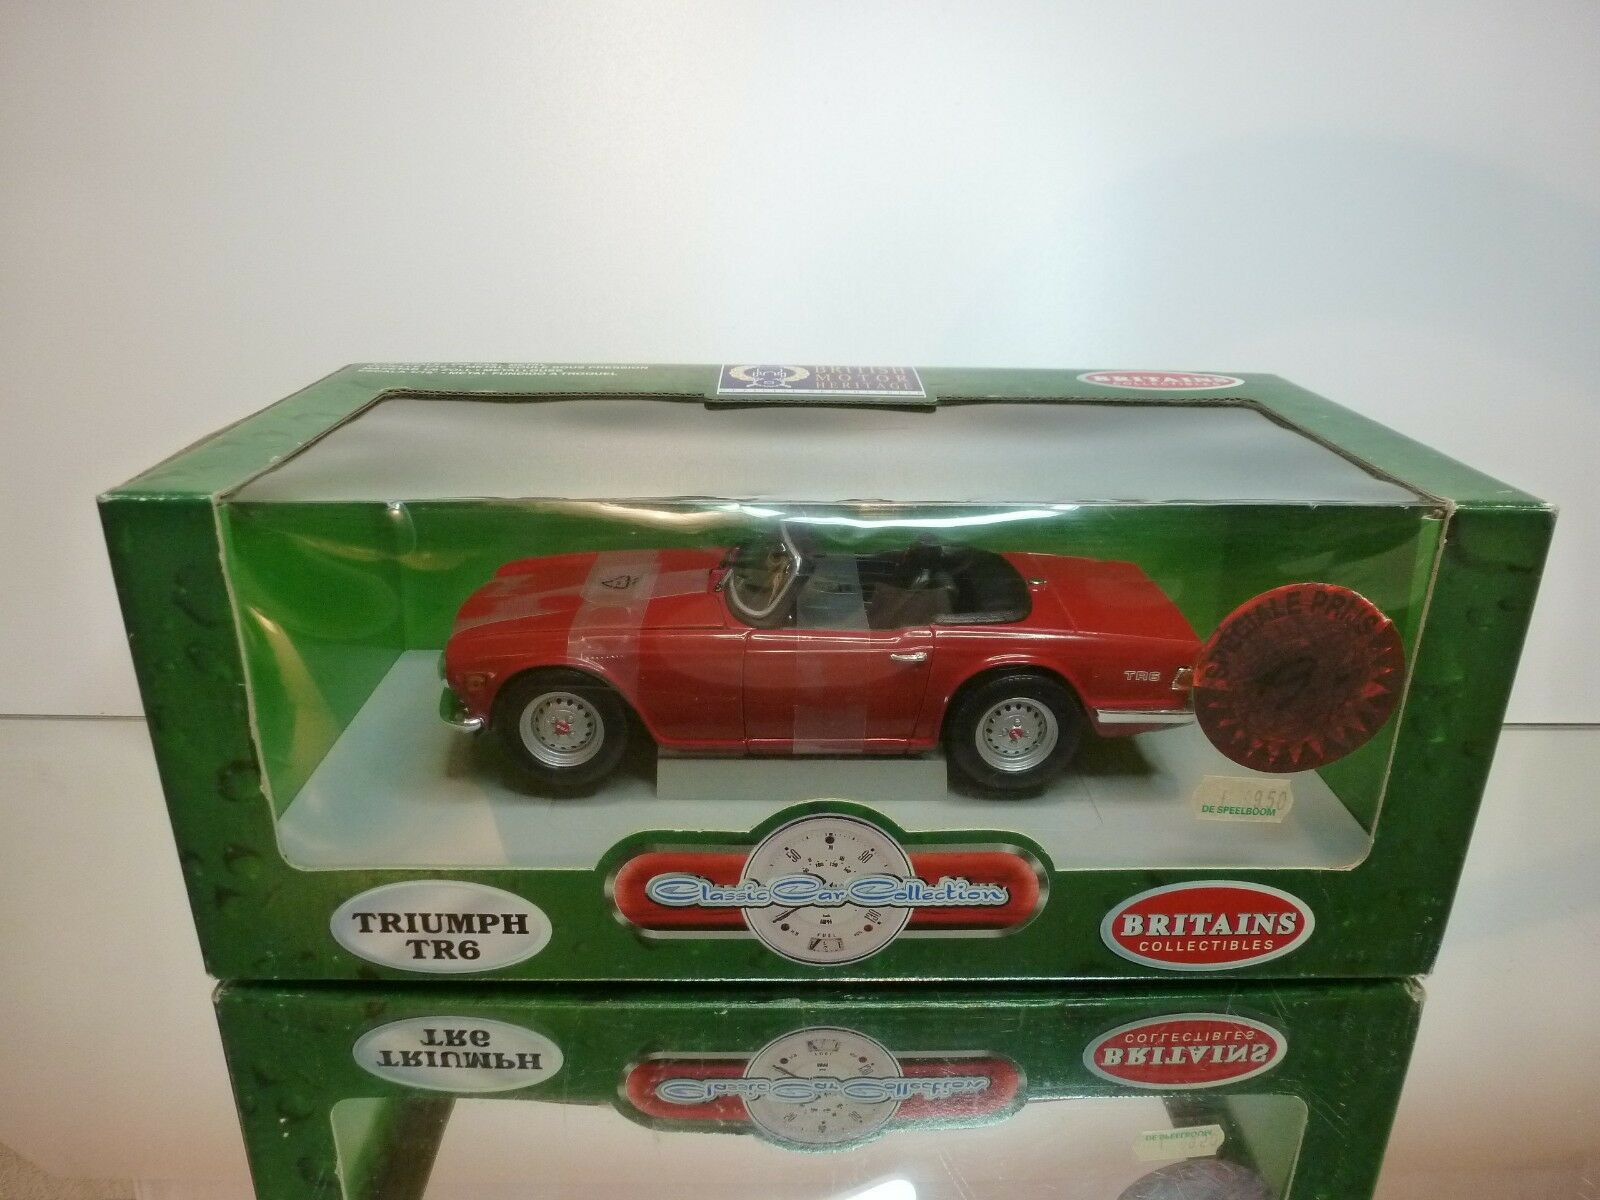 CLASSIC CAR COLLECTION TRIUMPH TR6 - rot 1 18 - EXCELLENT CONDITION - IN BOX